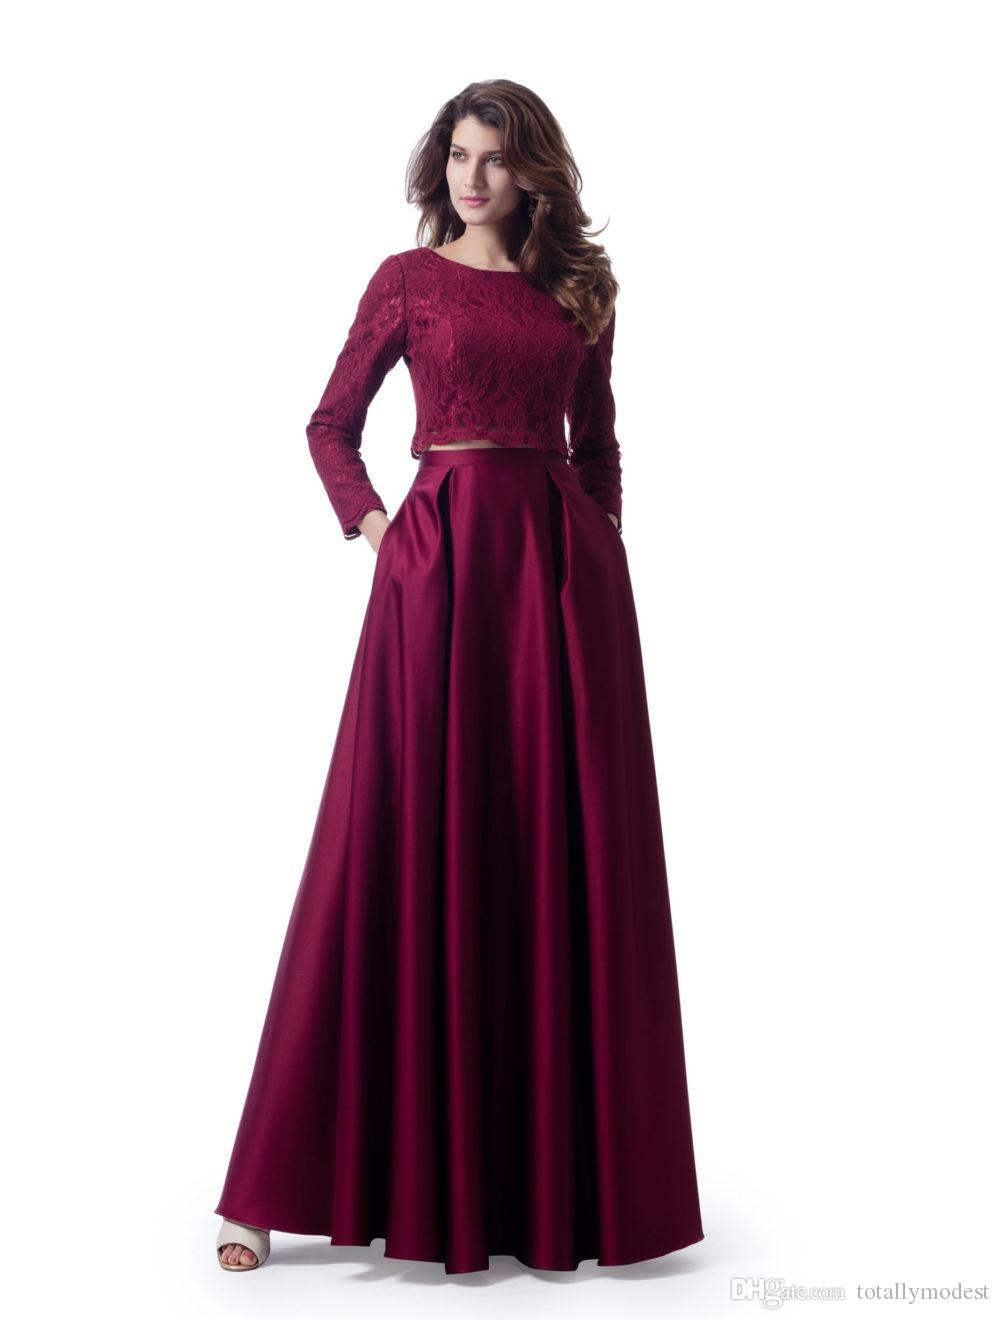 Dark Red Two Pieces Modest Bridesmaid Dresses With Long Sleeves Lace Top Satin Skirt With Pockets Wedding Party Dresses 2 Pieces New